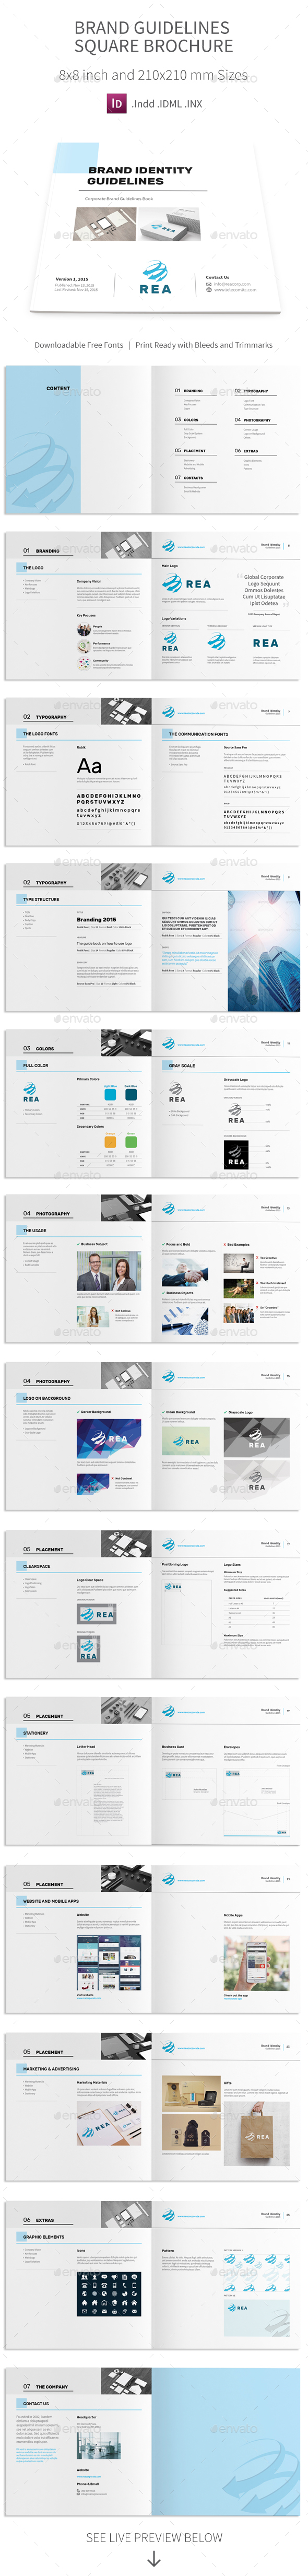 Brand Identity Guidelines Square Brochure - Informational Brochures